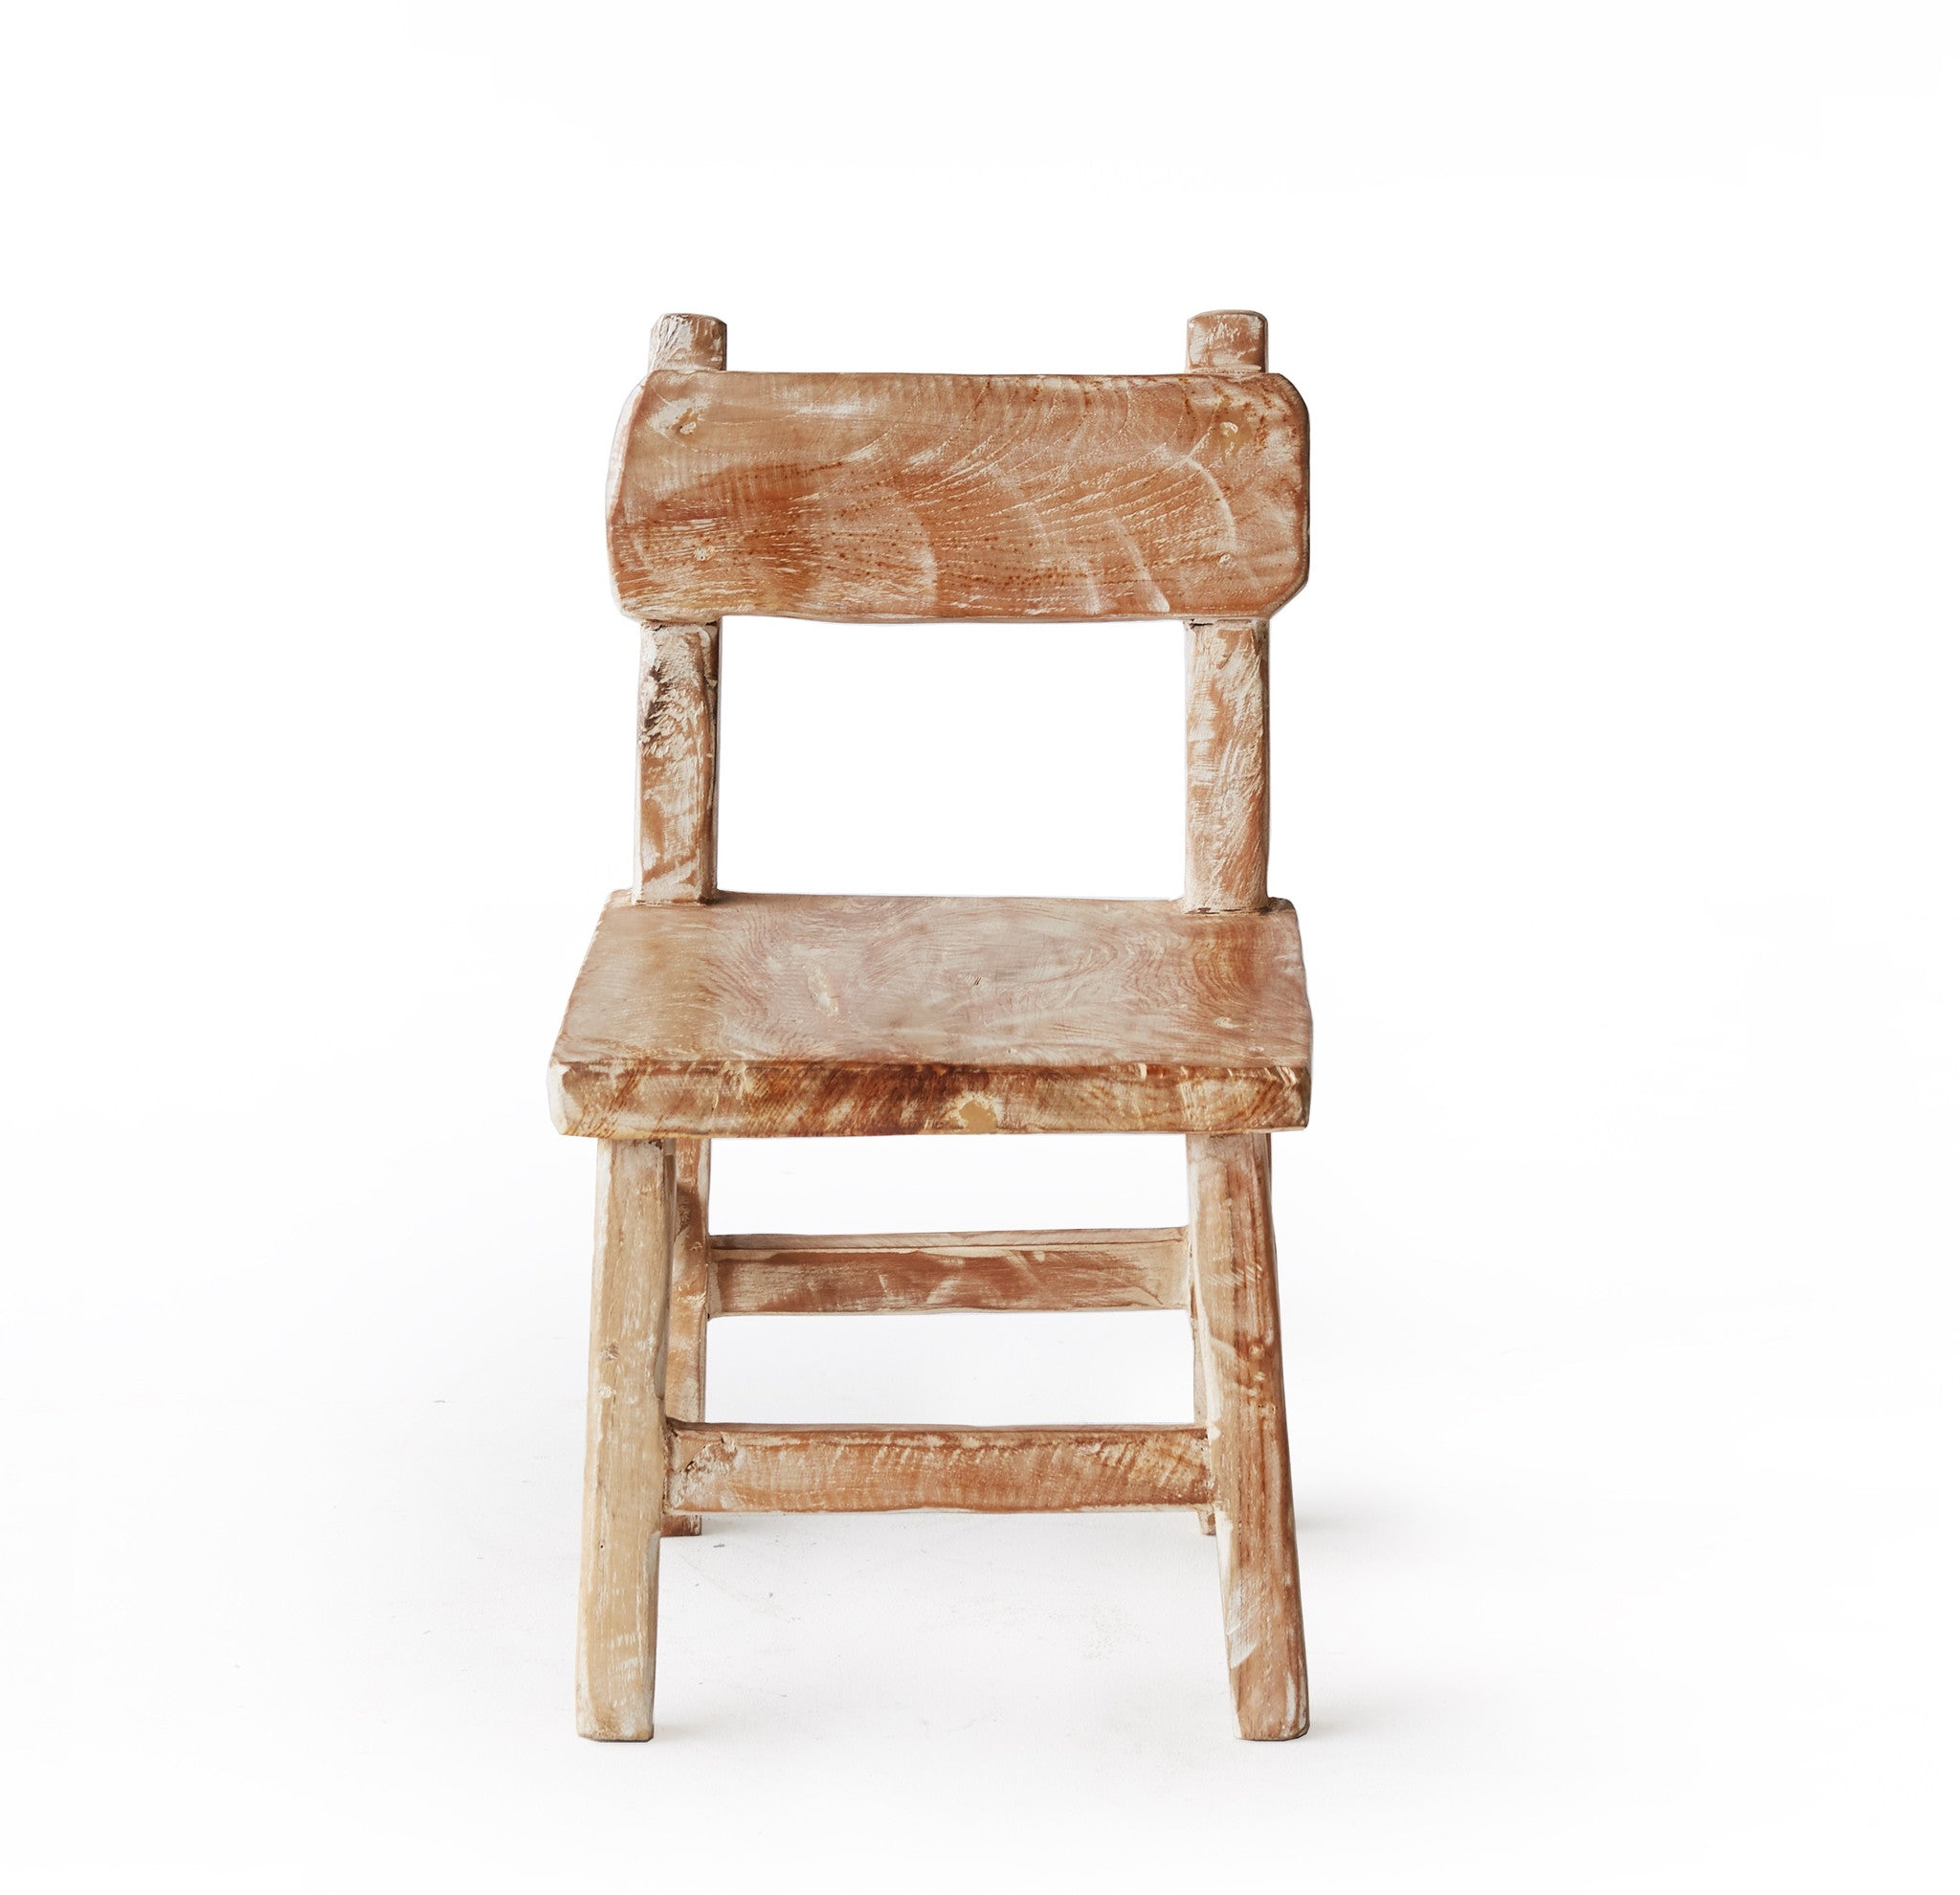 Teak Kid's Chair-Nomad Village-Originals Furniture - 4